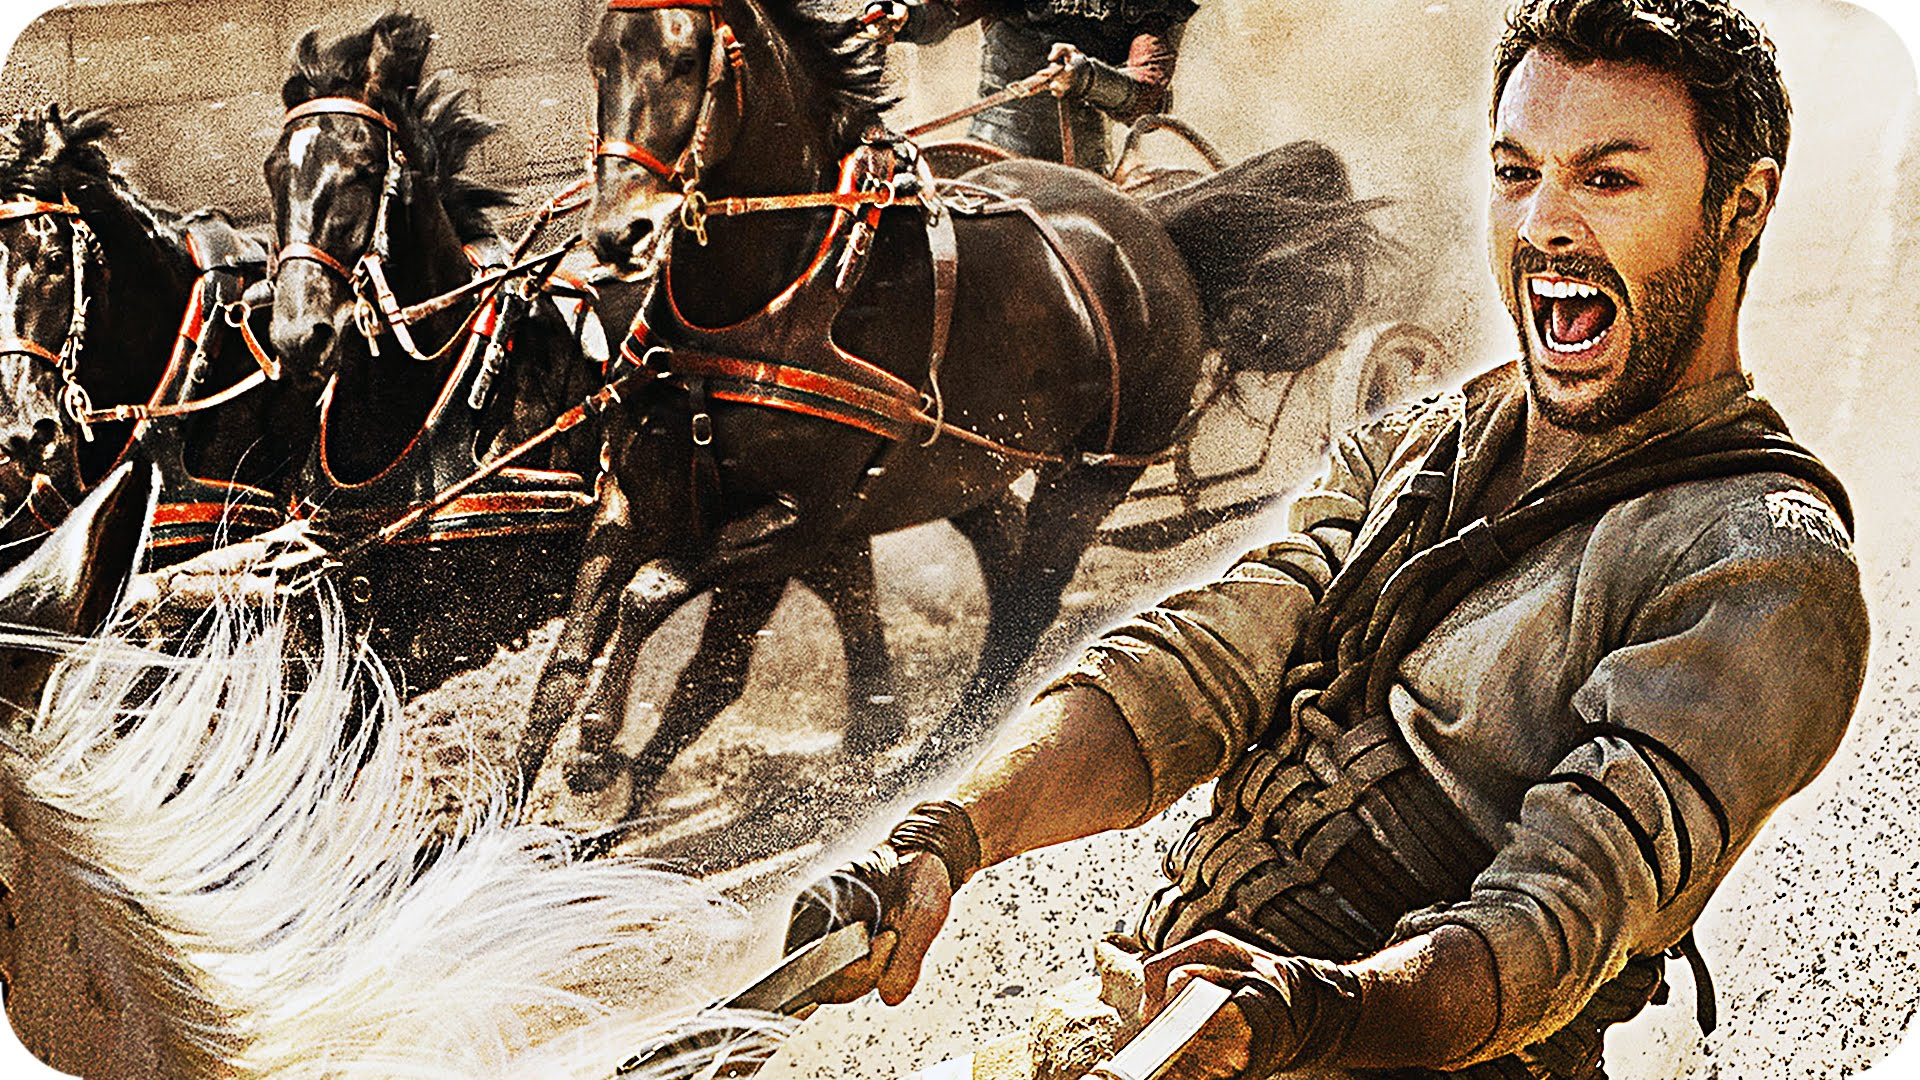 BEN HUR Trailer 2 & Featurette Chariot Race (2016)